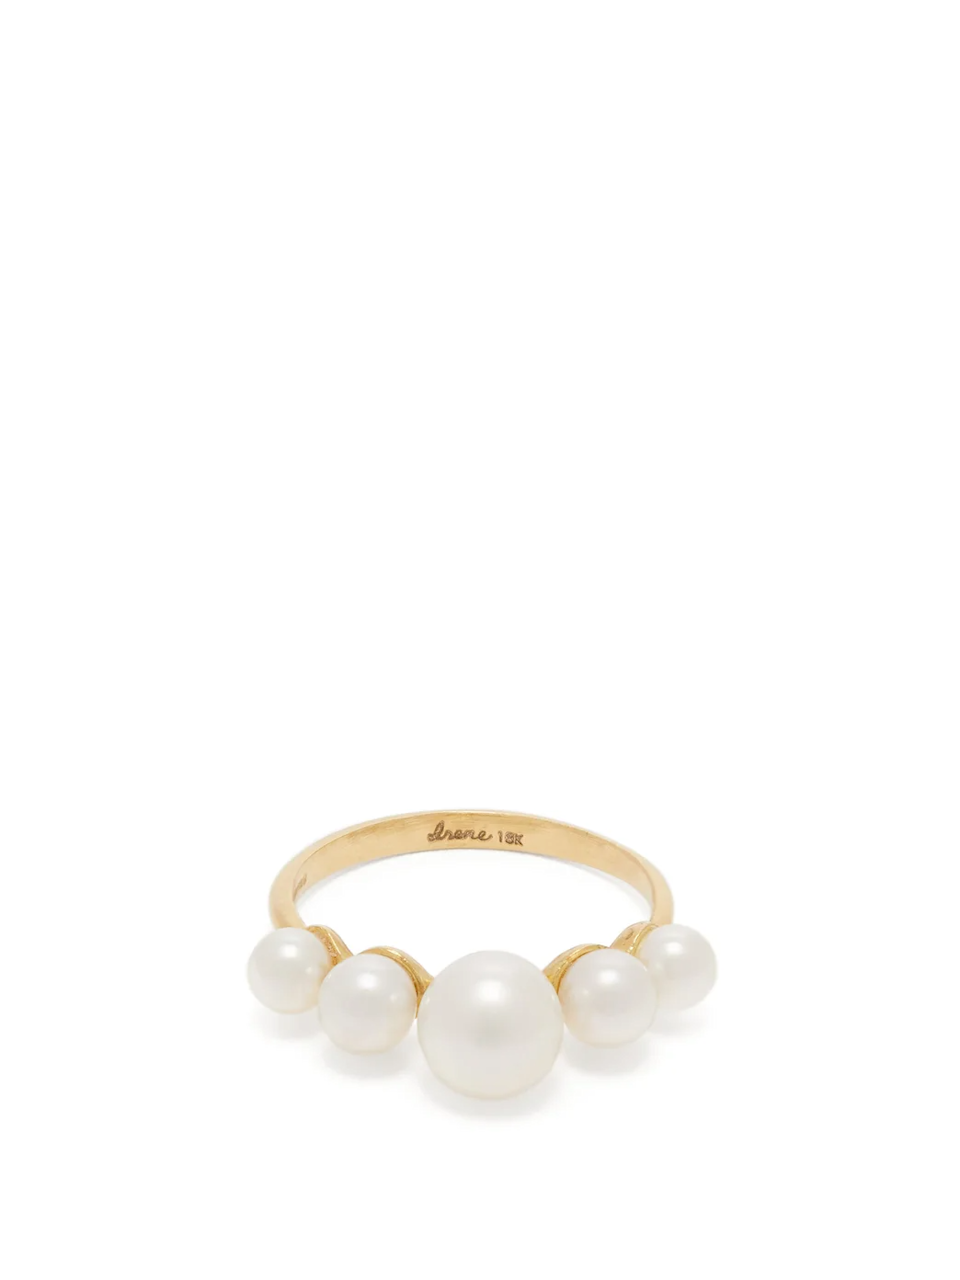 "<br><br><strong>Irene Neuwirth</strong> Gumball Pearl & 18kt Gold Ring, $, available at <a href=""https://go.skimresources.com/?id=30283X879131&url=https%3A%2F%2Fwww.matchesfashion.com%2Fus%2Fproducts%2FIrene-Neuwirth-Gumball-pearl-%2526-18kt-gold-ring-1288269"" rel=""nofollow noopener"" target=""_blank"" data-ylk=""slk:Matches Fashion"" class=""link rapid-noclick-resp"">Matches Fashion</a>"